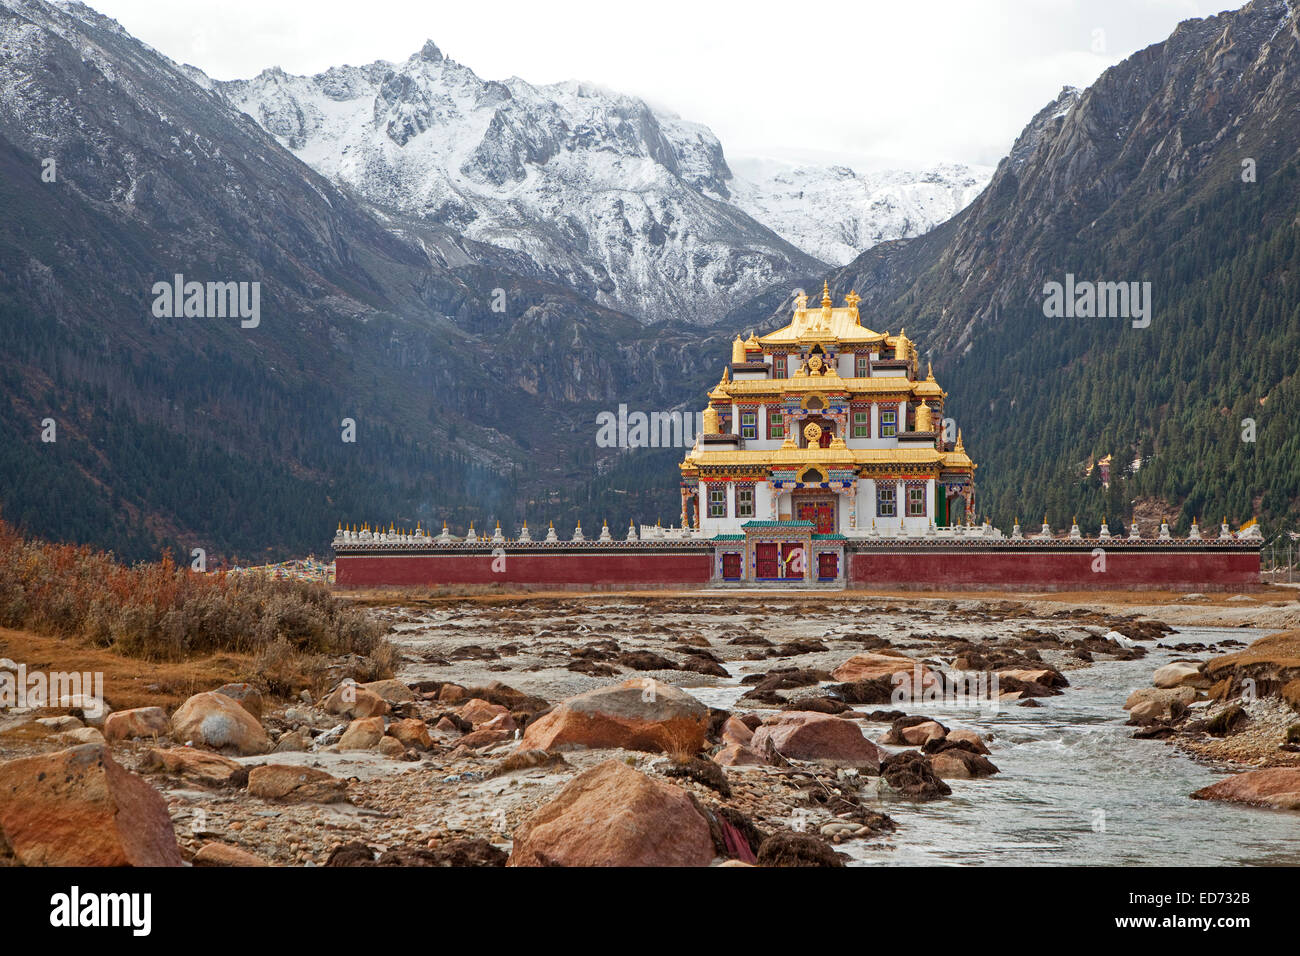 Tibetan temple with golden roof dedicated to Guru Rinpoche near Zhuqing, Sichuan Province, China - Stock Image